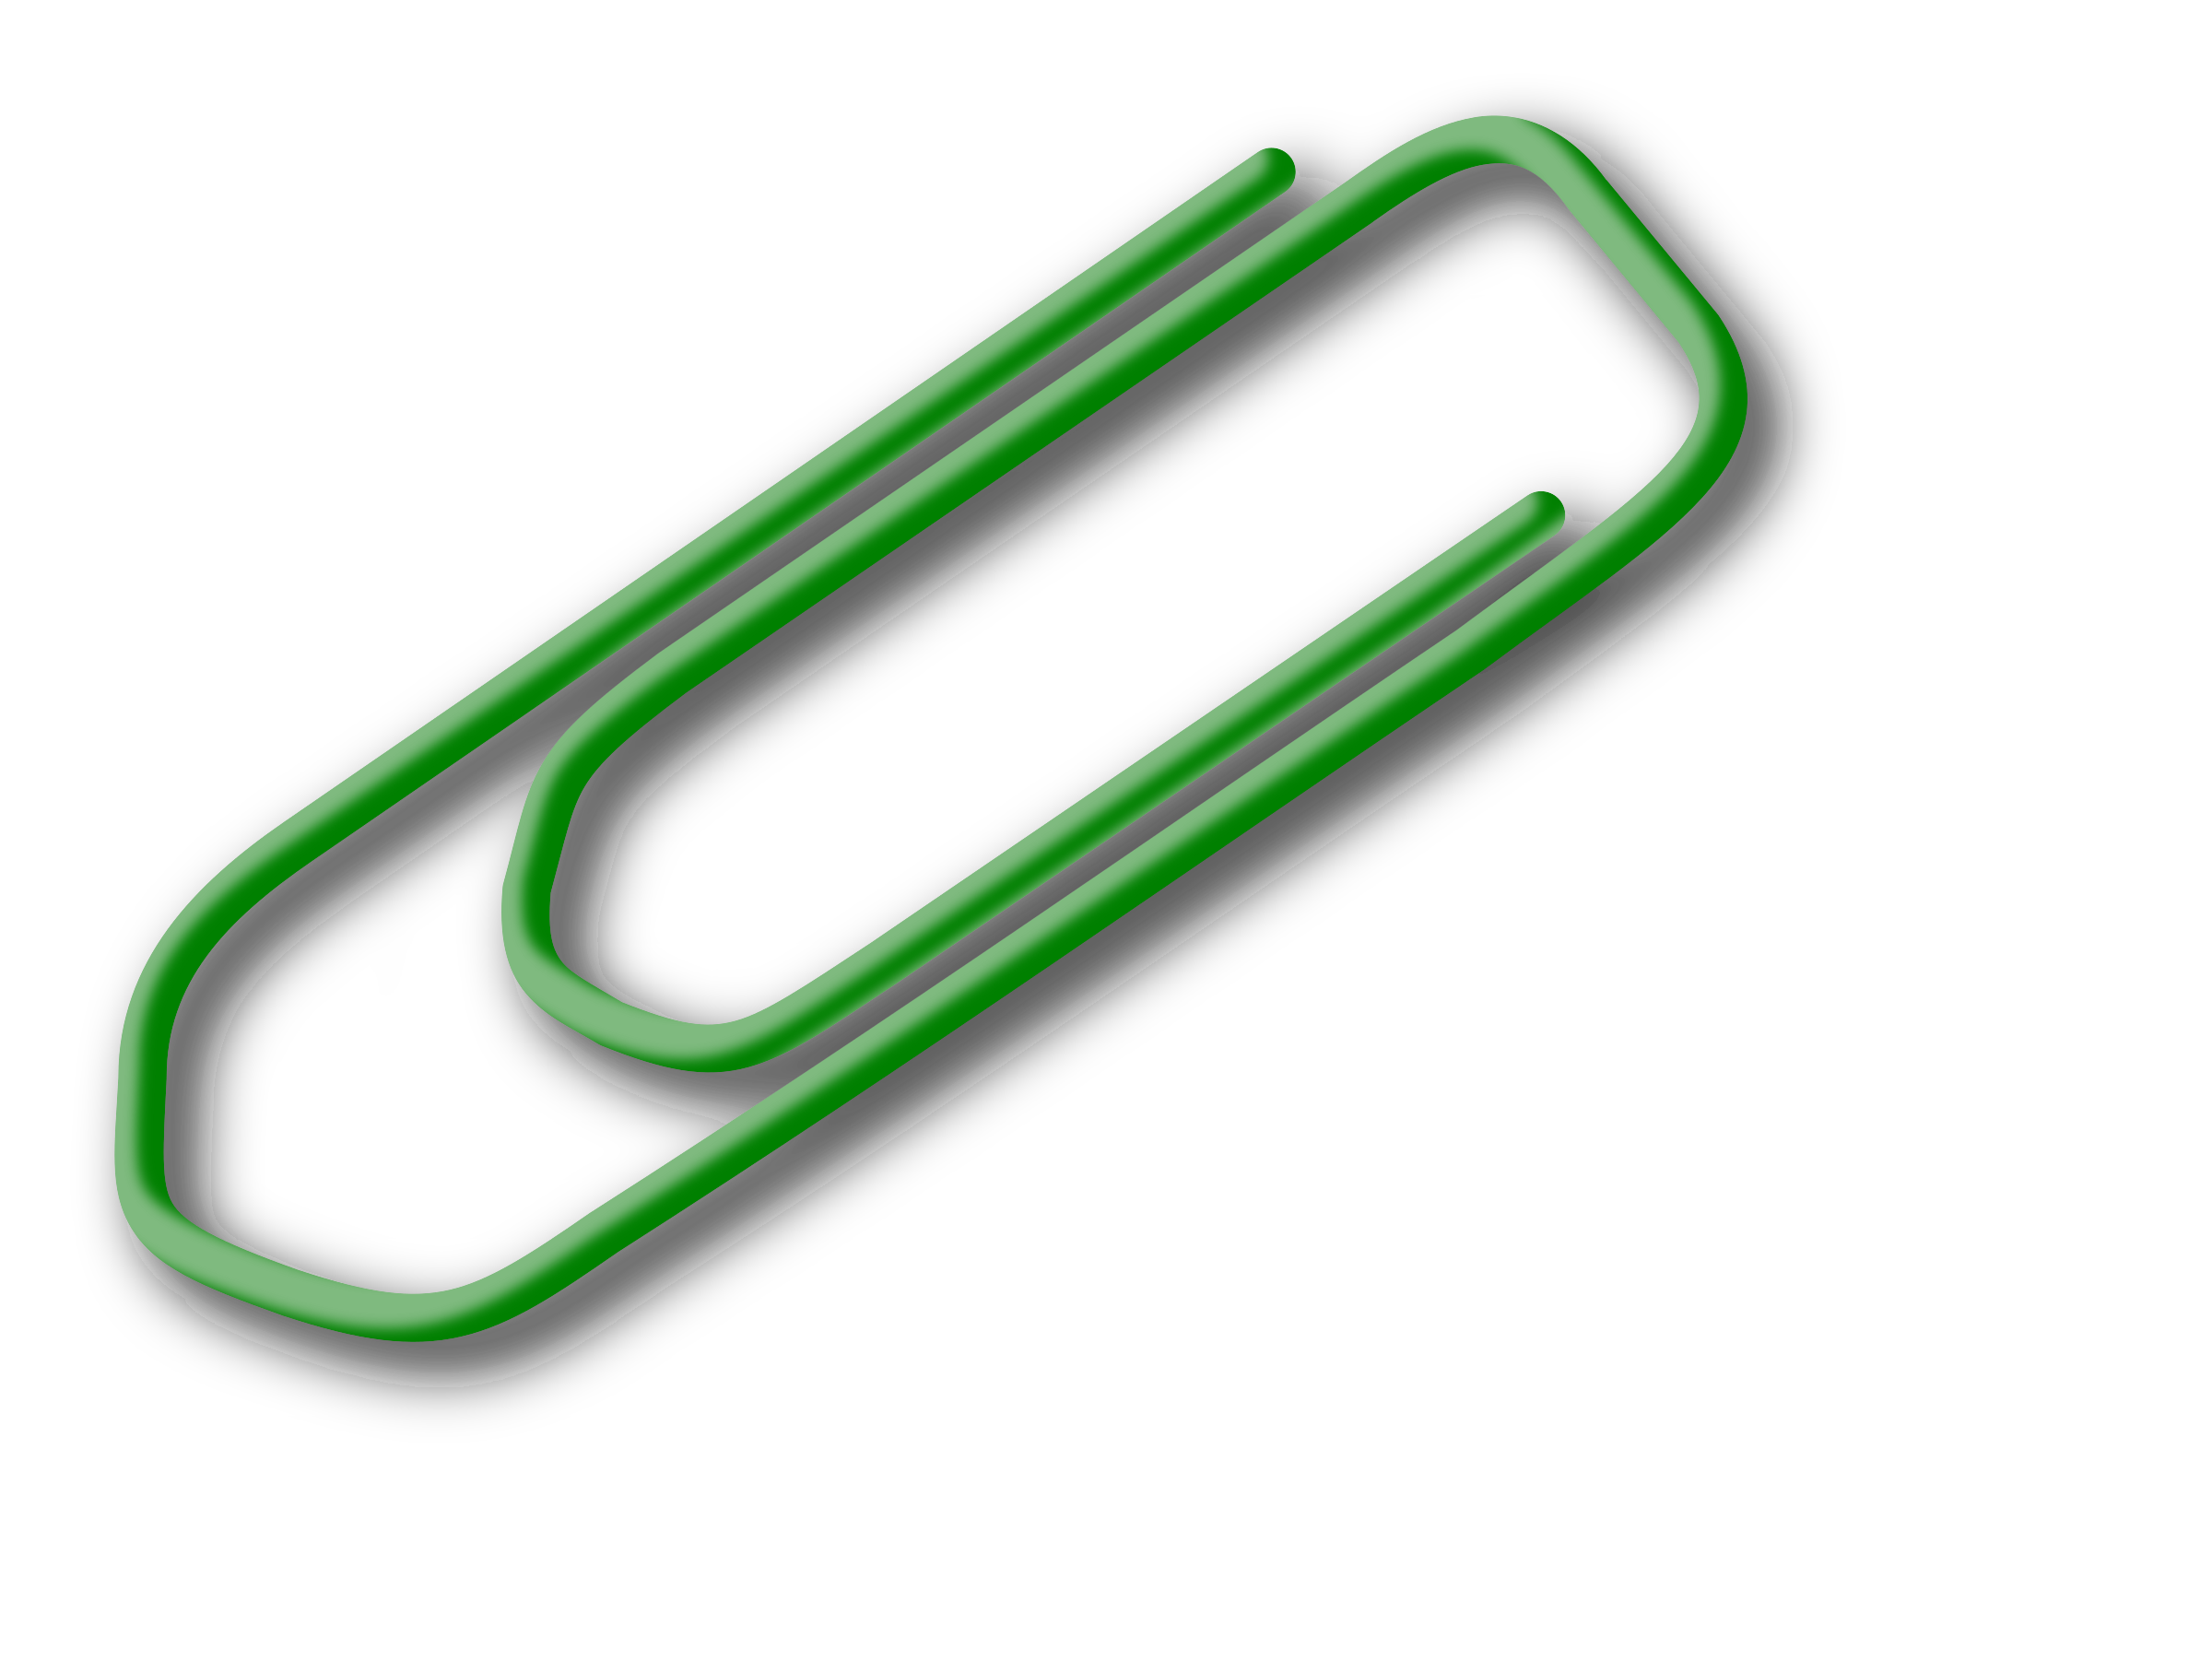 Green big image png. Note clipart paperclip